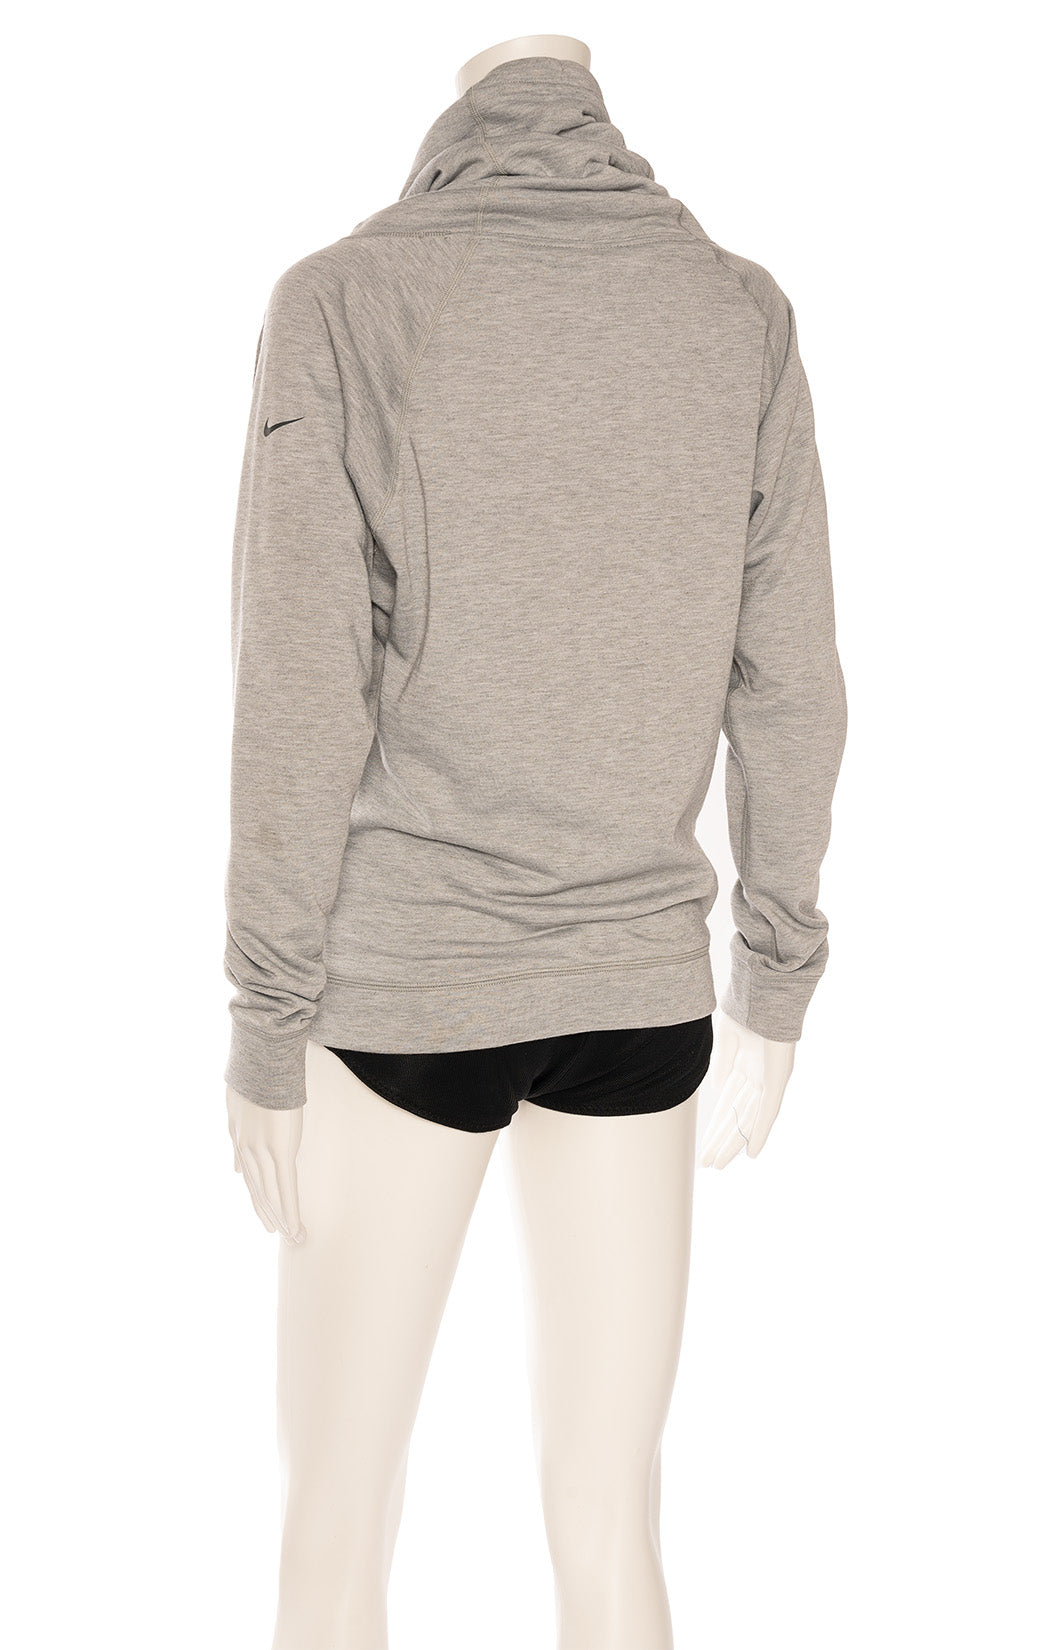 Gray cowl neck sweatshirt